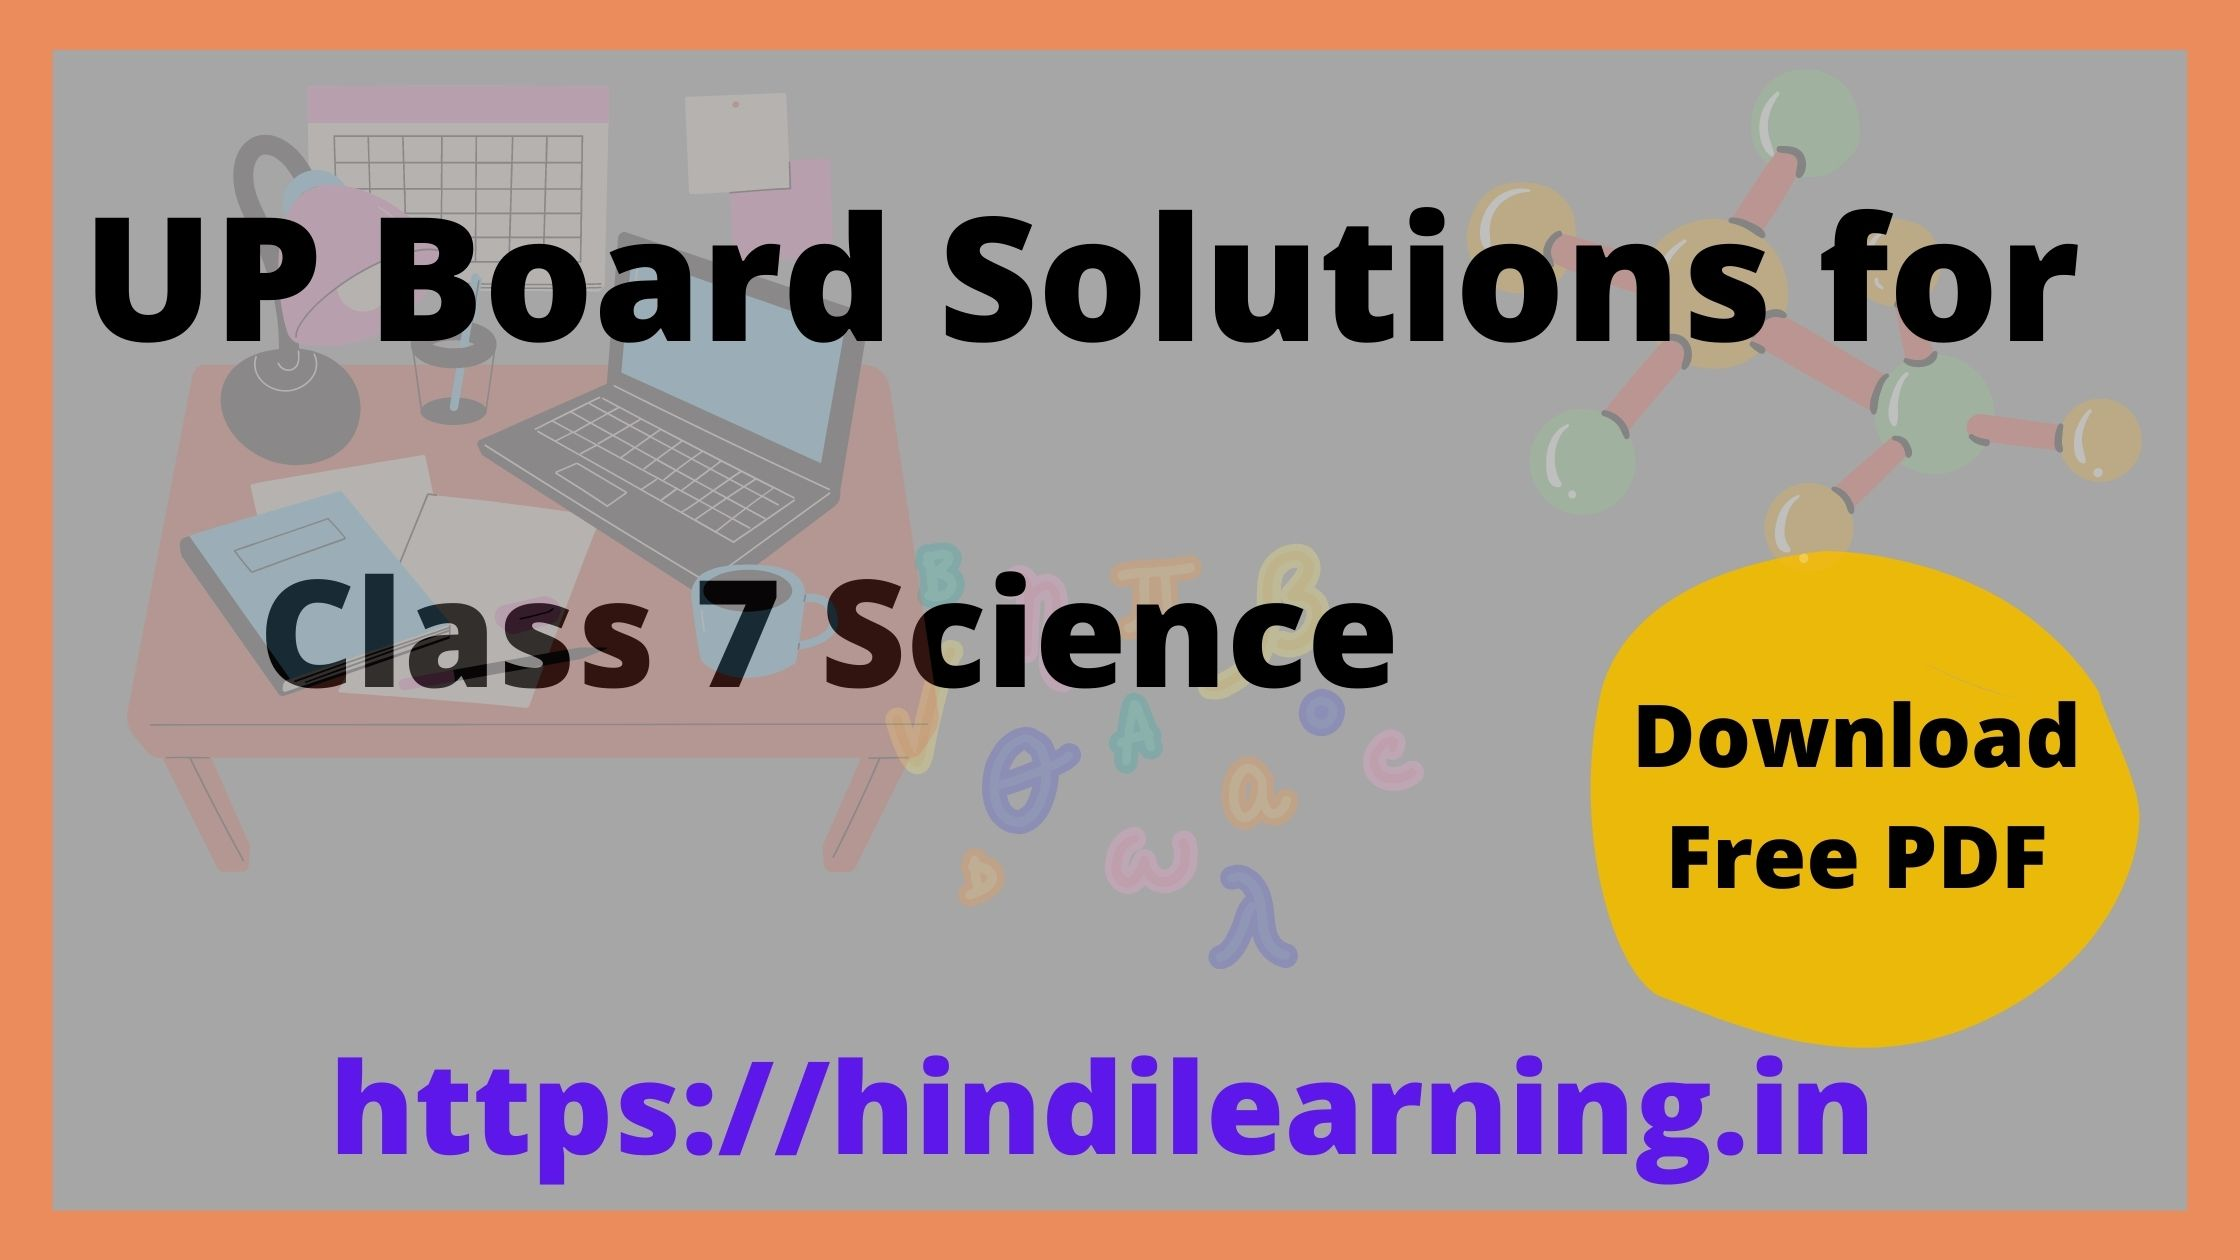 UP Board Solutions for Class 7 Science ( विज्ञान )